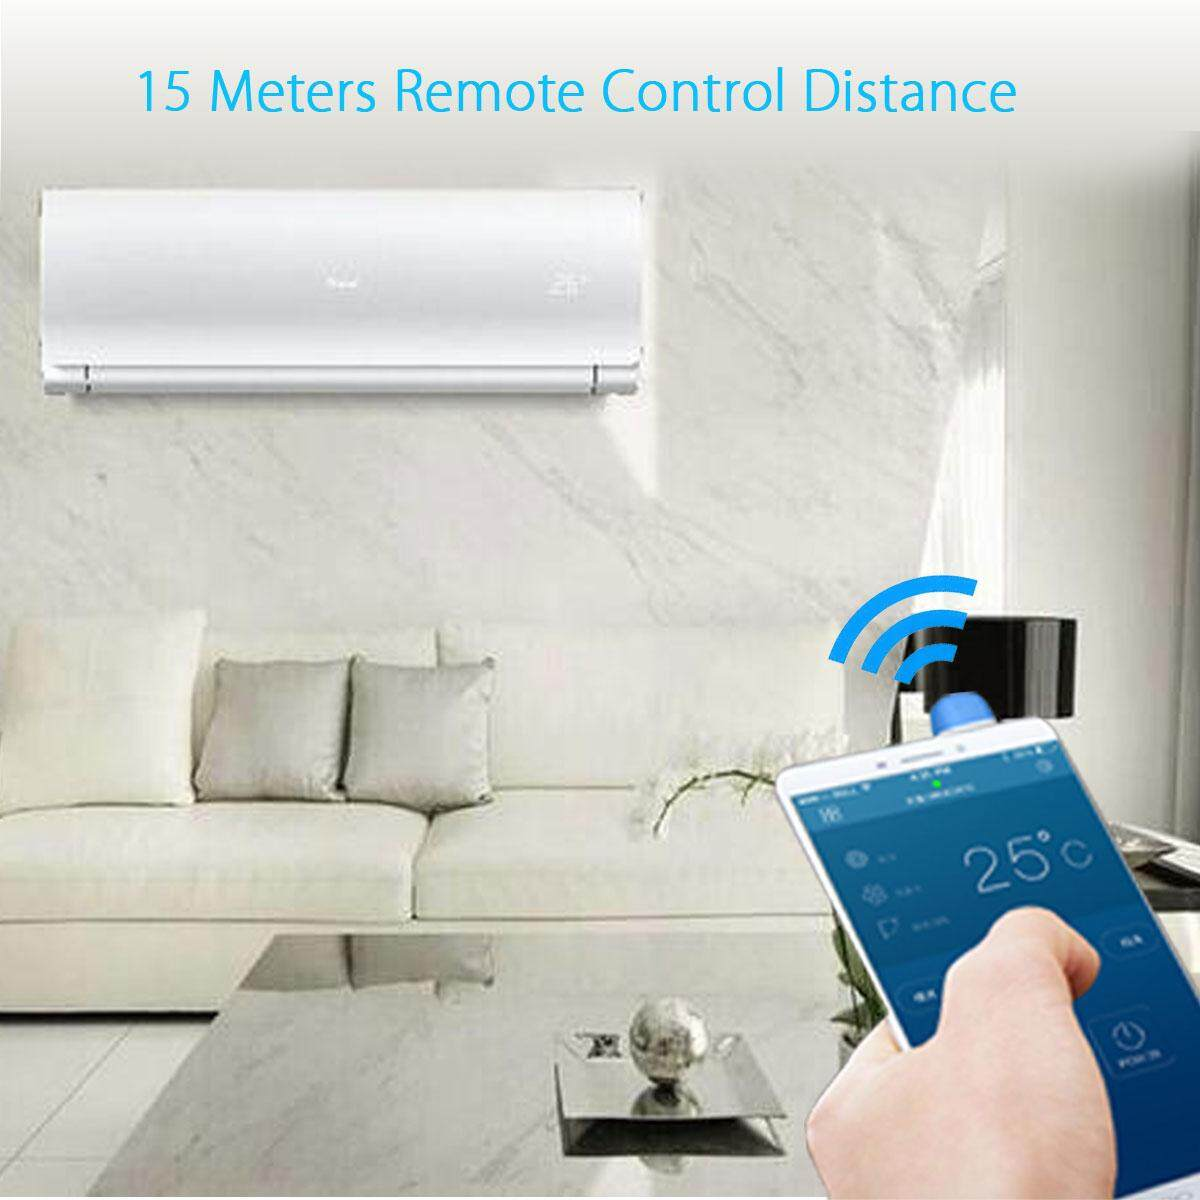 Features Universal 3 5mm Air Conditioner Tv Dvd Stb Ir Remote Control For Iphone Android Black Dan Harga Terbaru November 2018